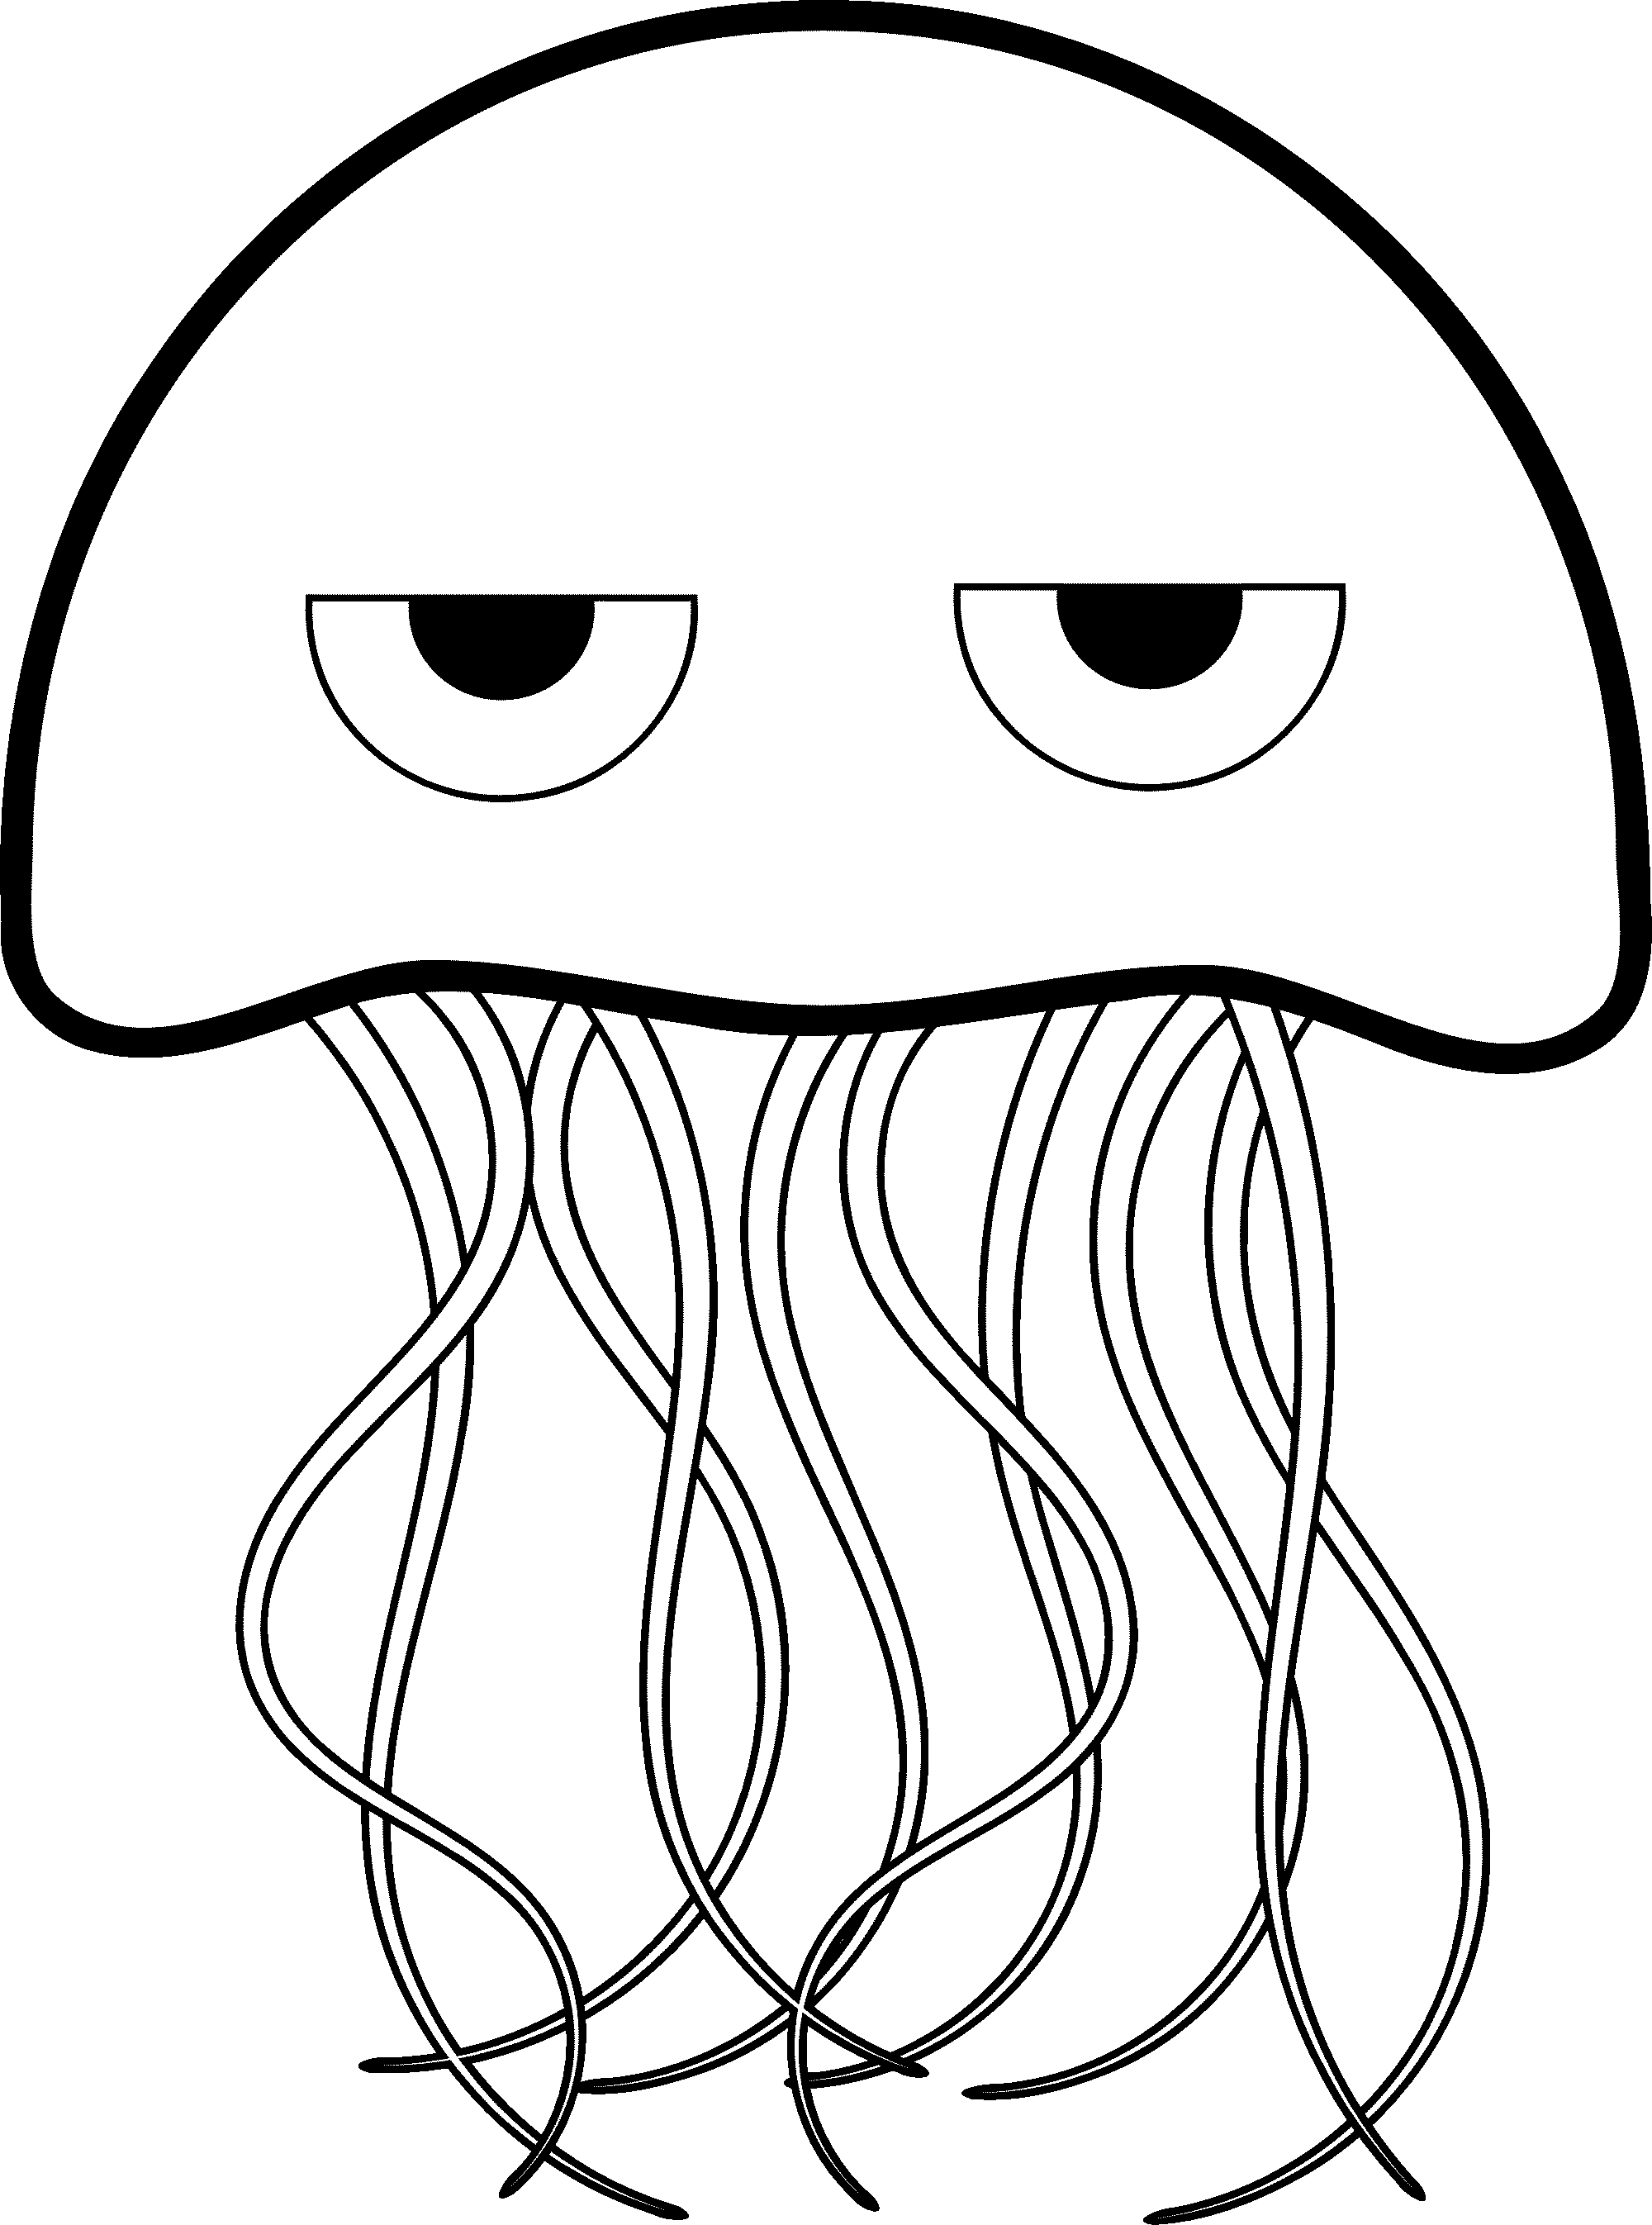 box jellyfish coloring pages | Jellyfish Clipart Black And White | Free download best ...